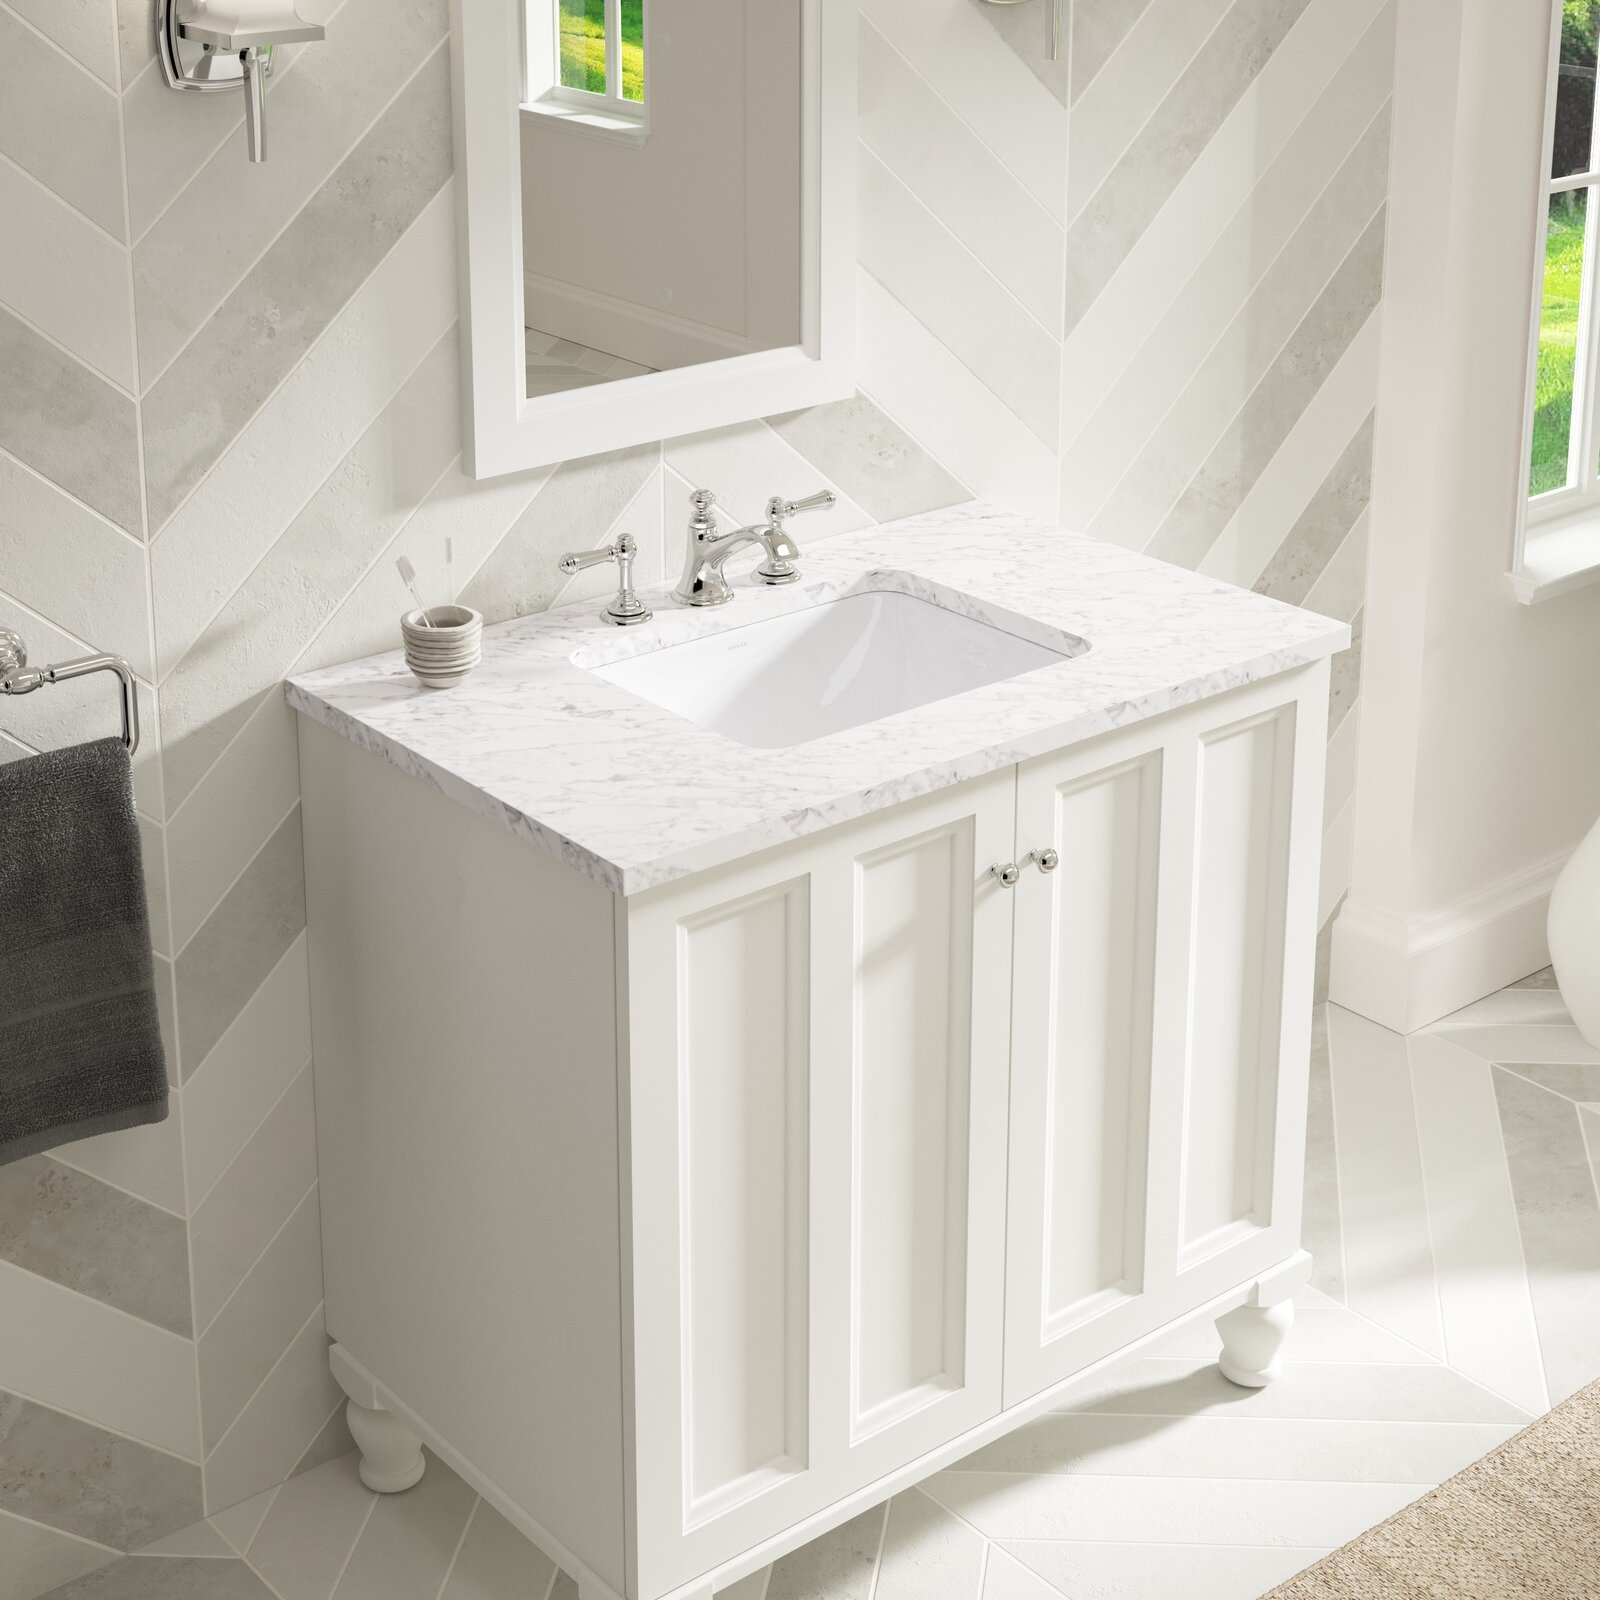 Kohler caxton rectangle undermount bathroom sink with - How to install an undermount bathroom sink ...